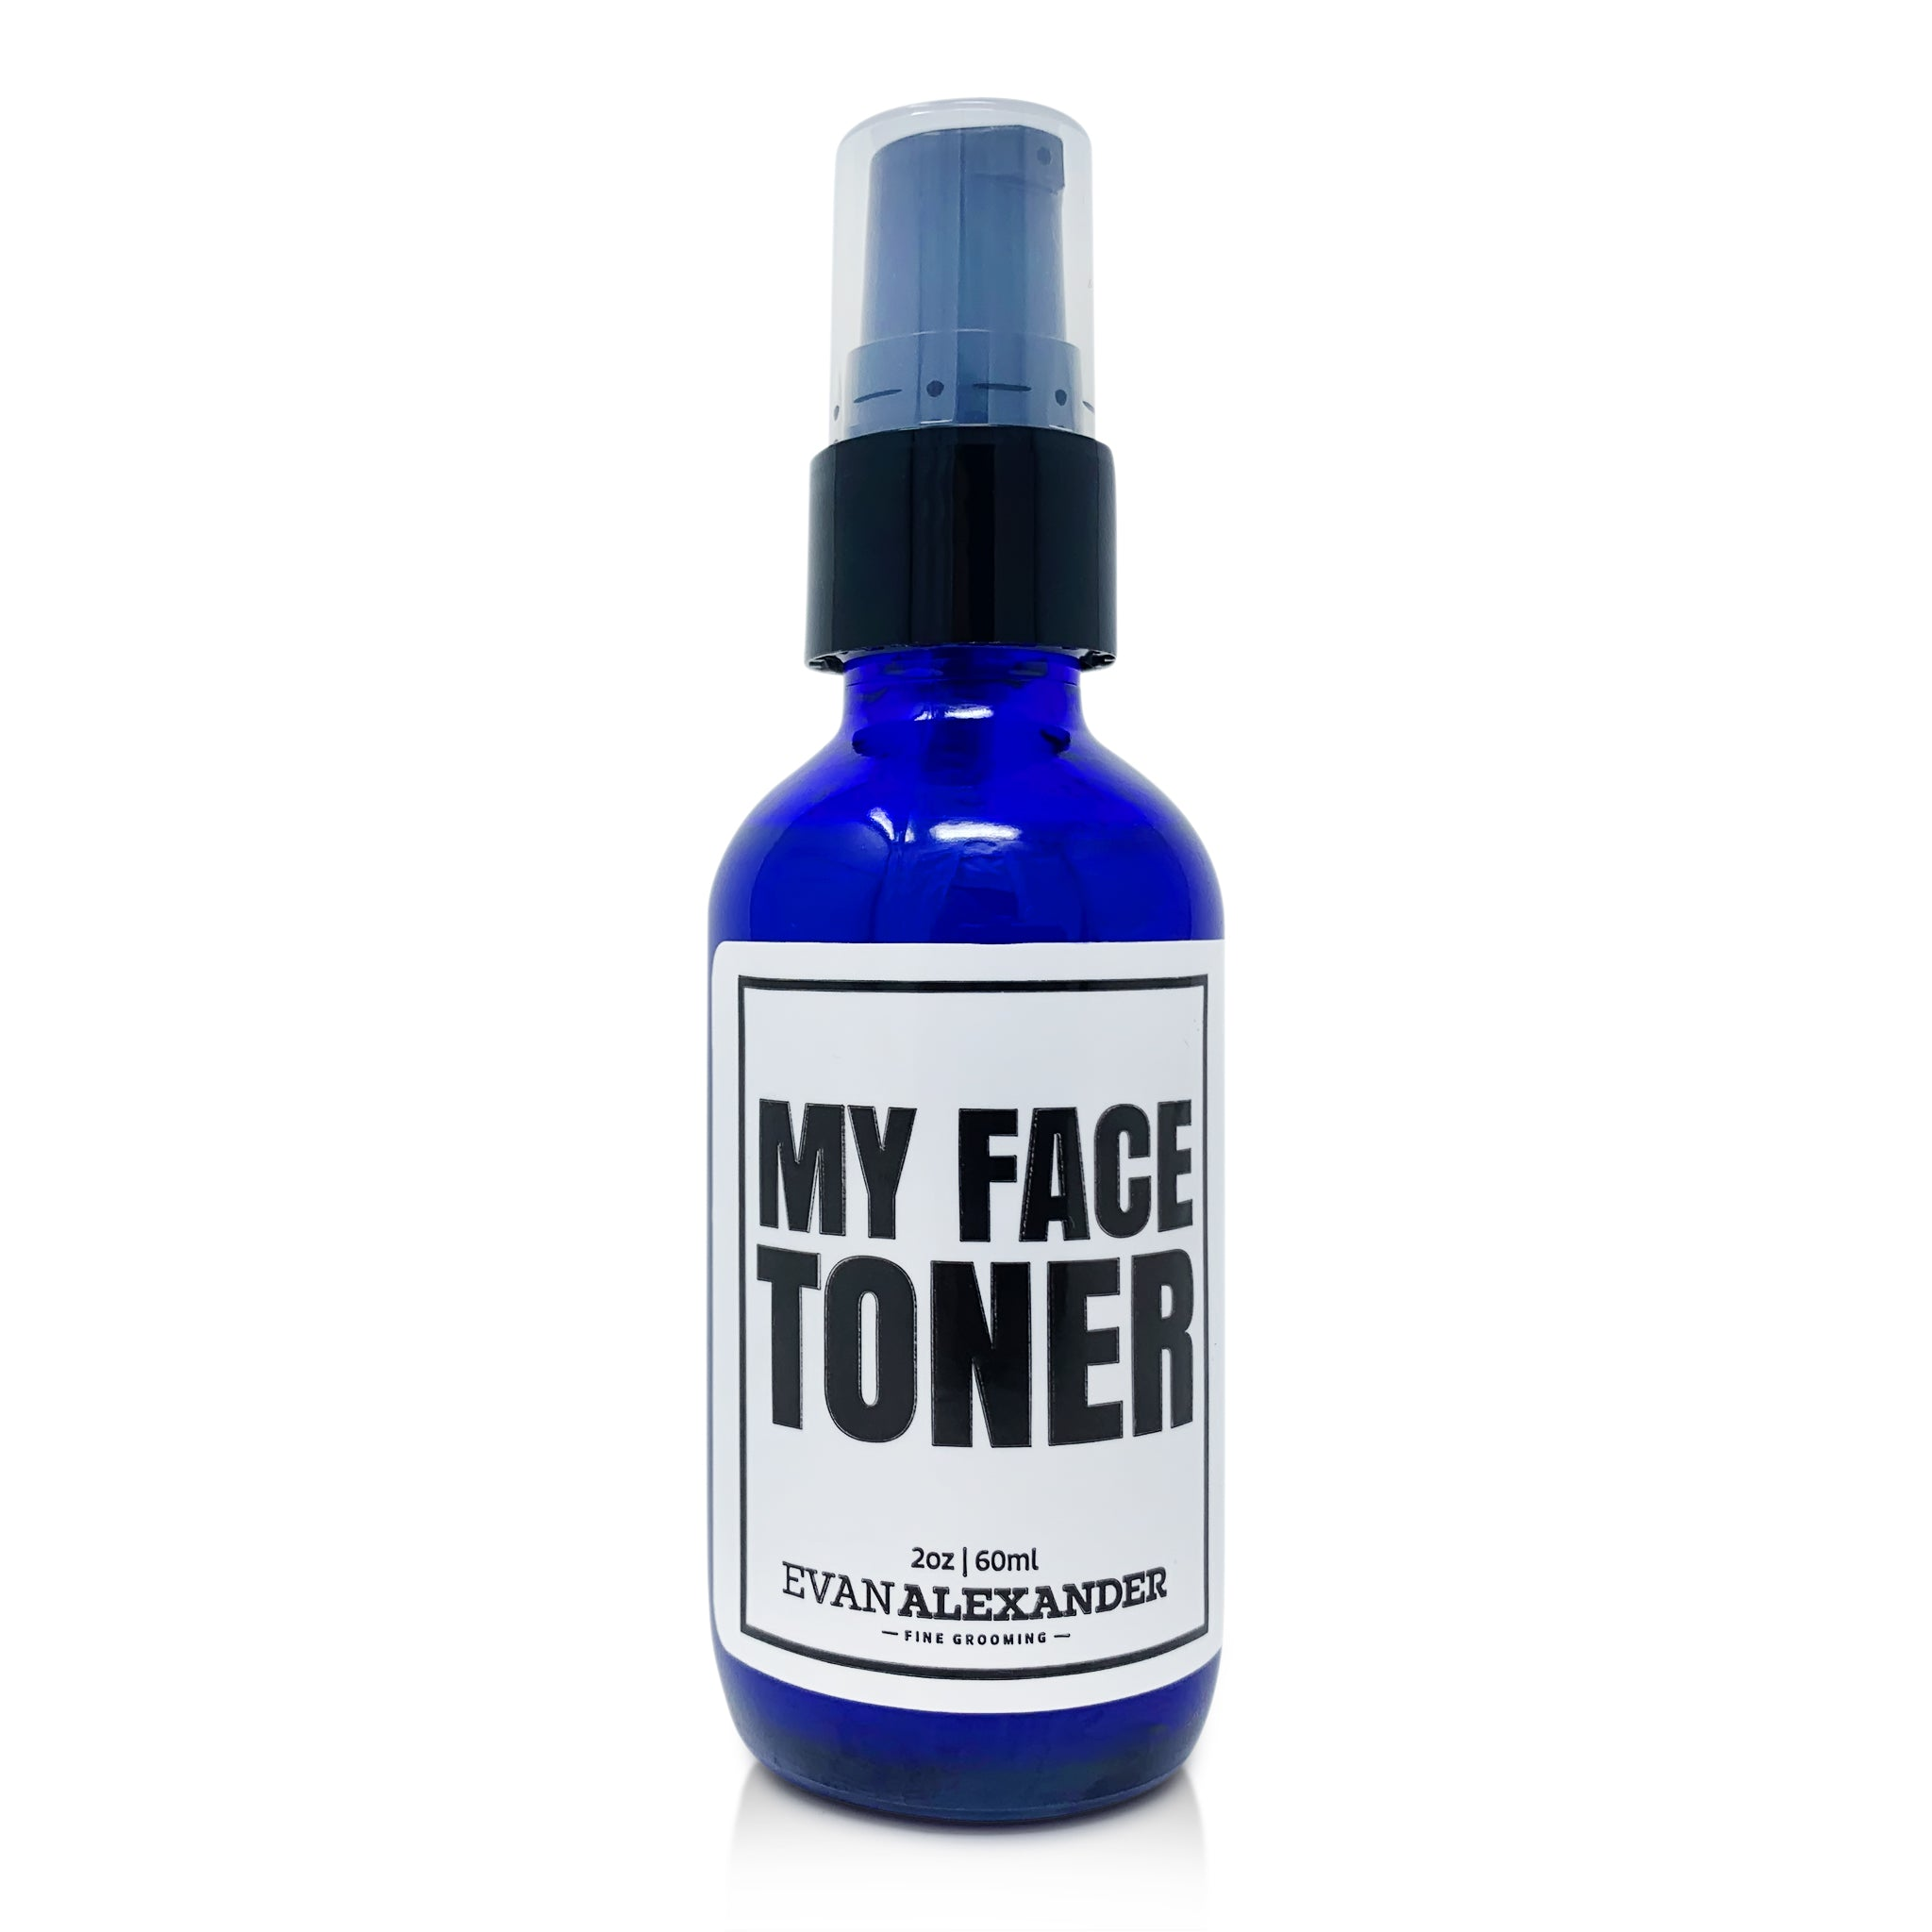 MY Face Toner